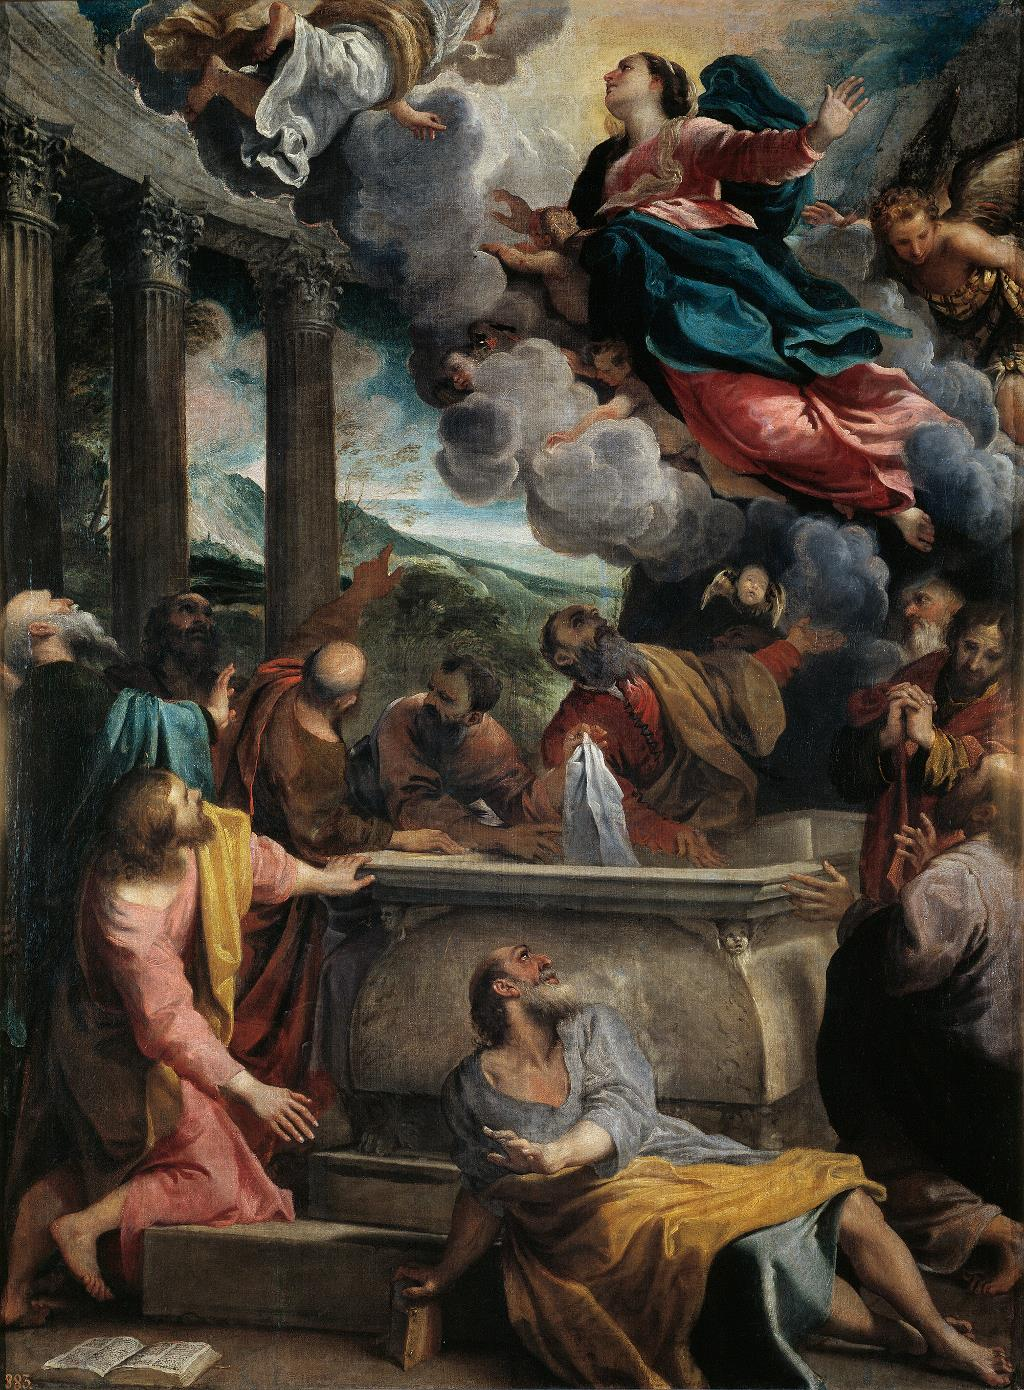 The legacy of the Carracci